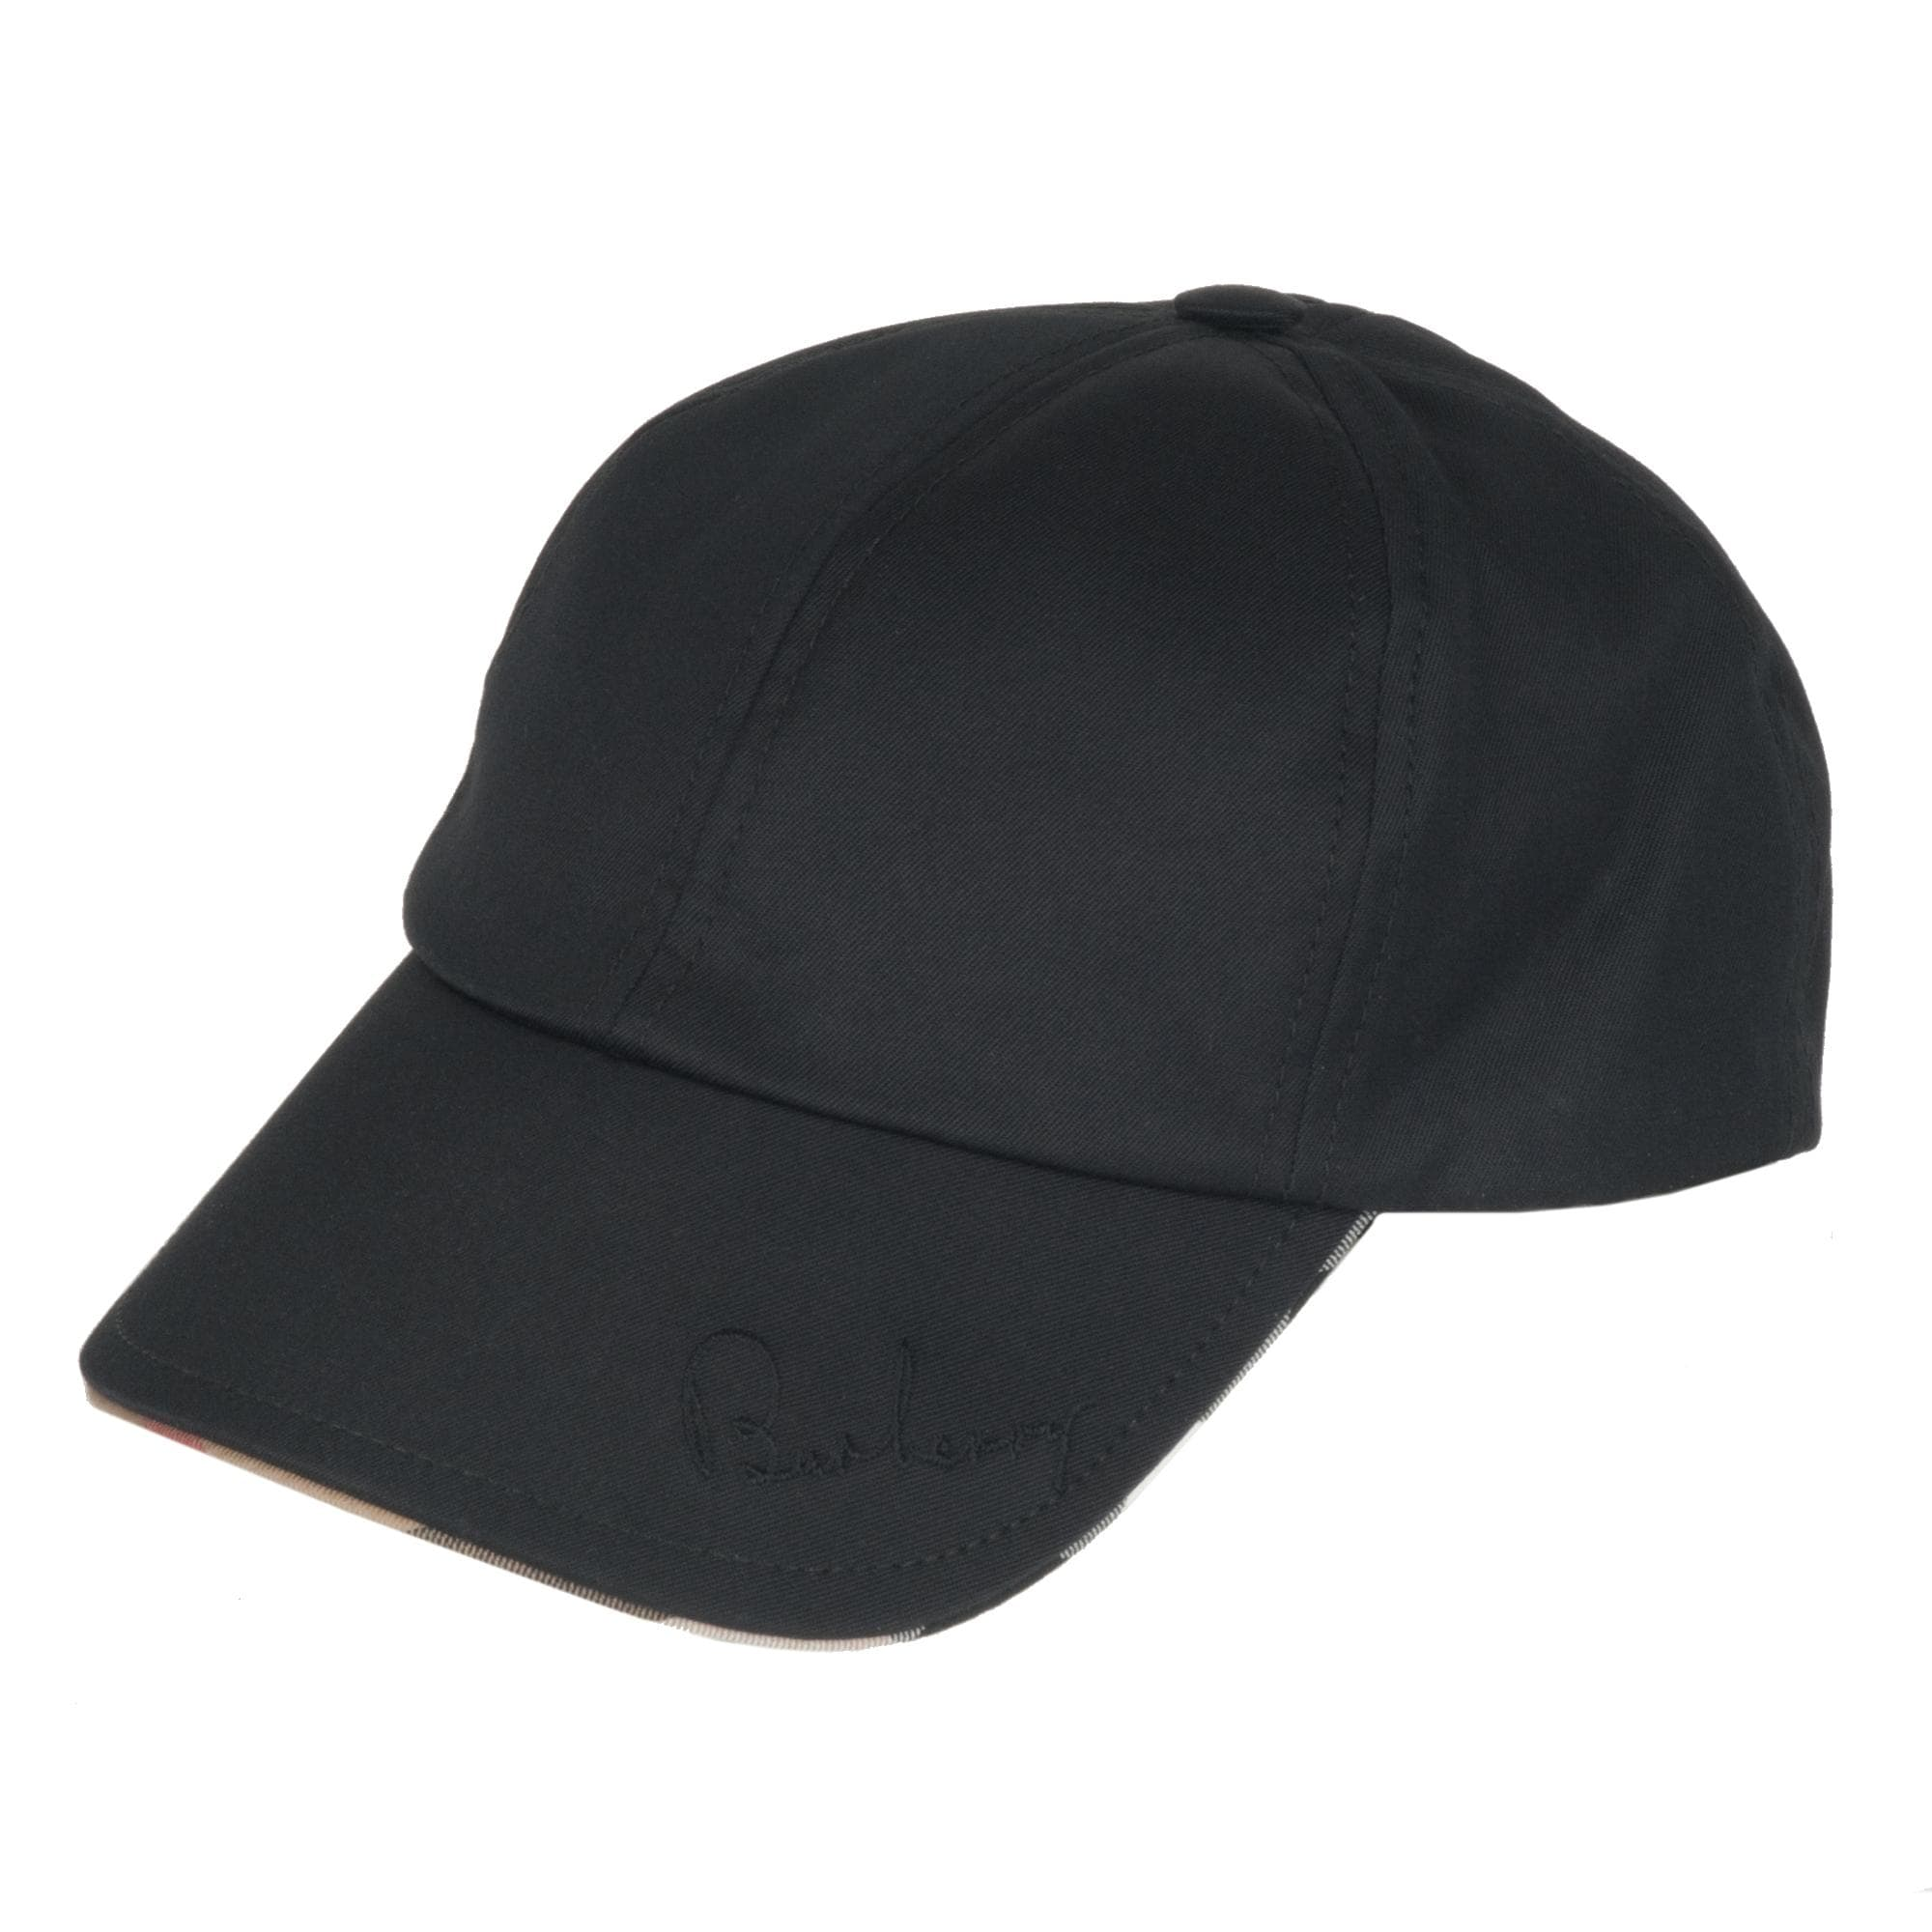 Shop Burberry Cotton-blend Black Baseball Cap - Free Shipping Today ... 66475eed662